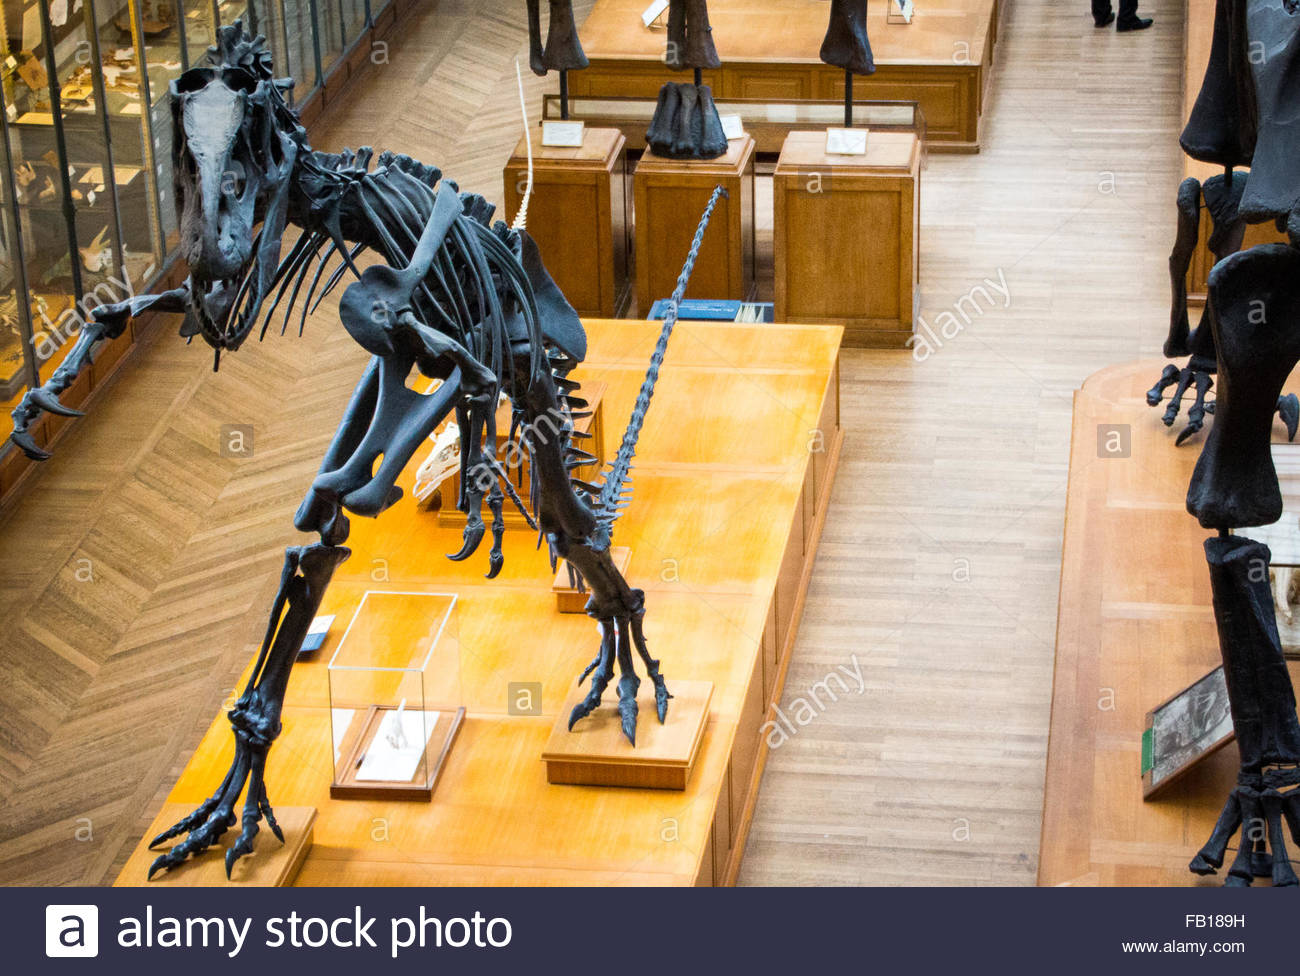 Dinosaur fossil in a museum - Stock Image